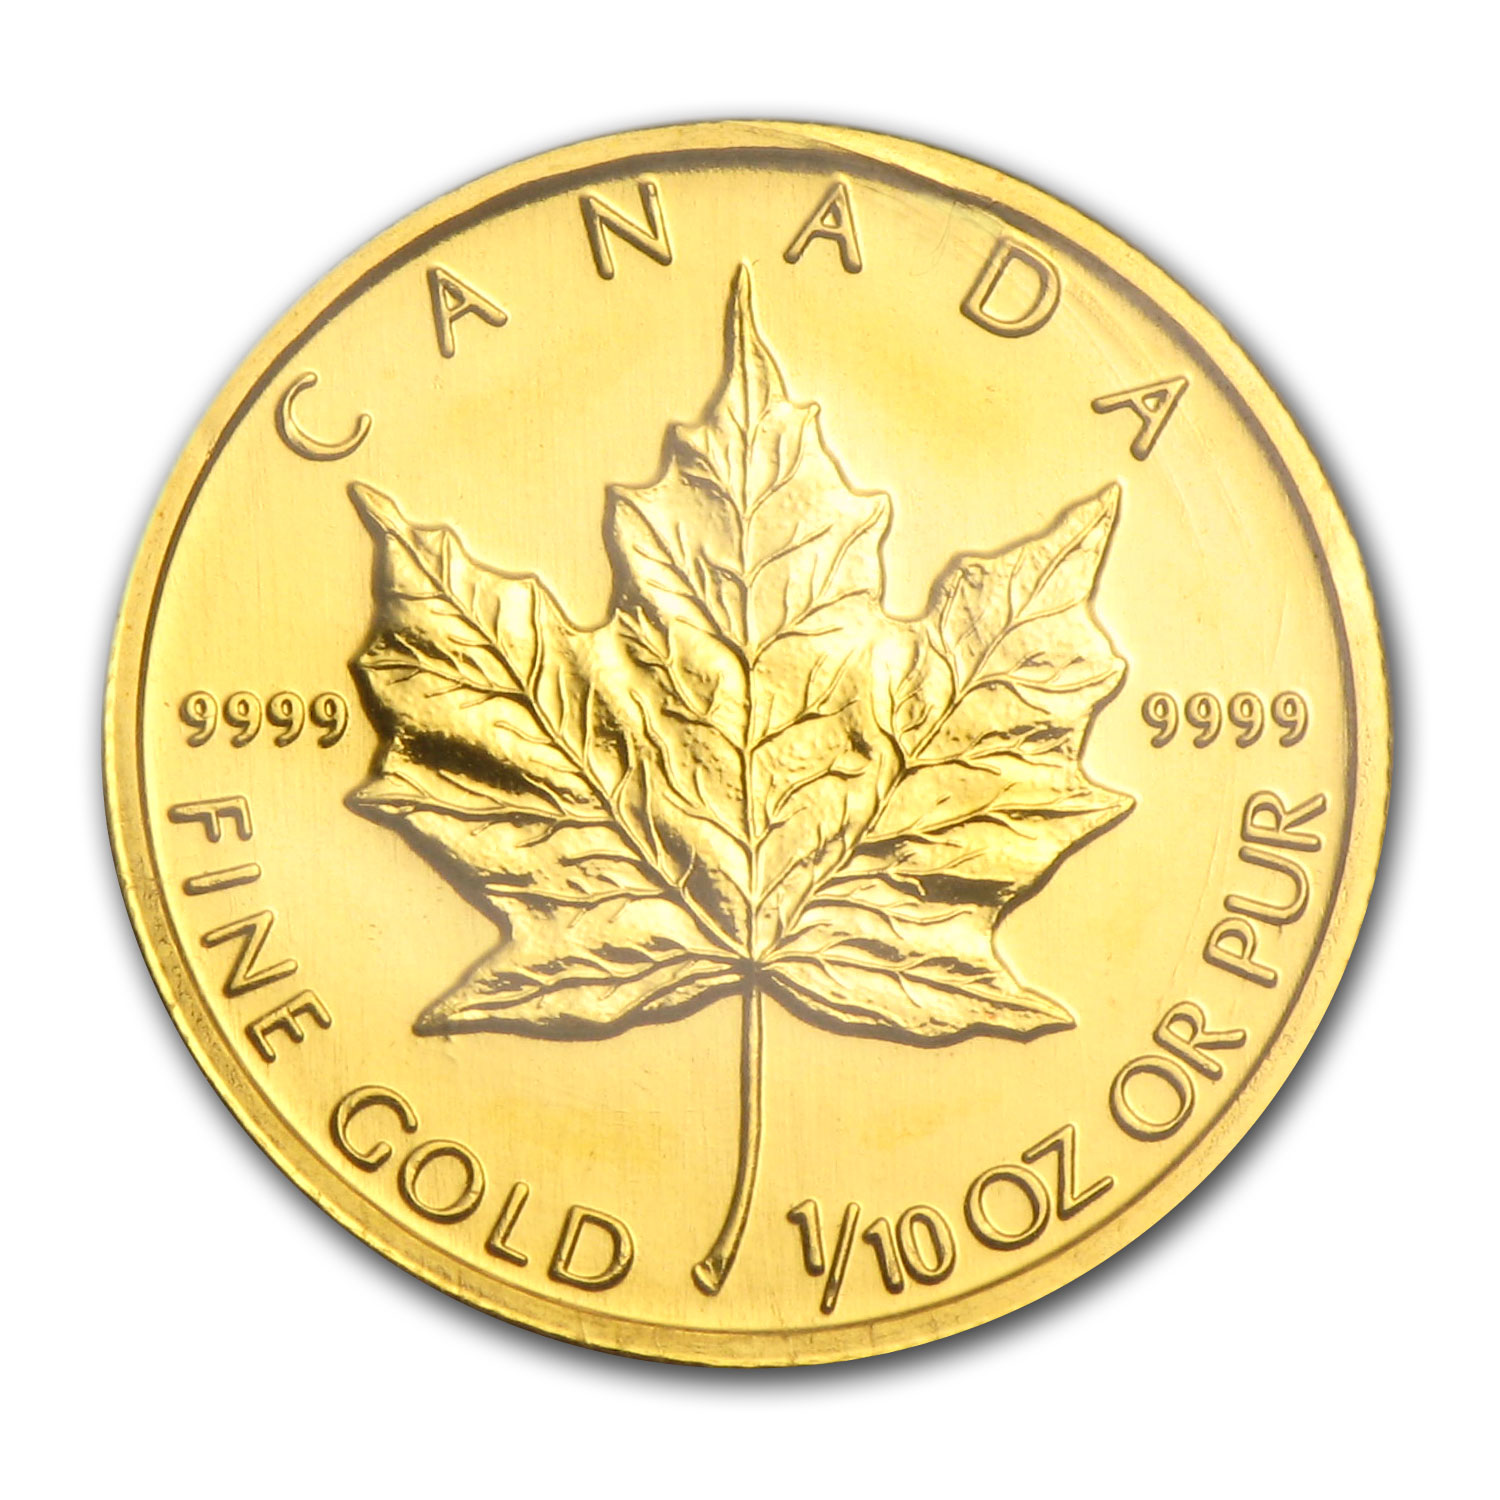 2005 1/10 oz Gold Canadian Maple Leaf BU